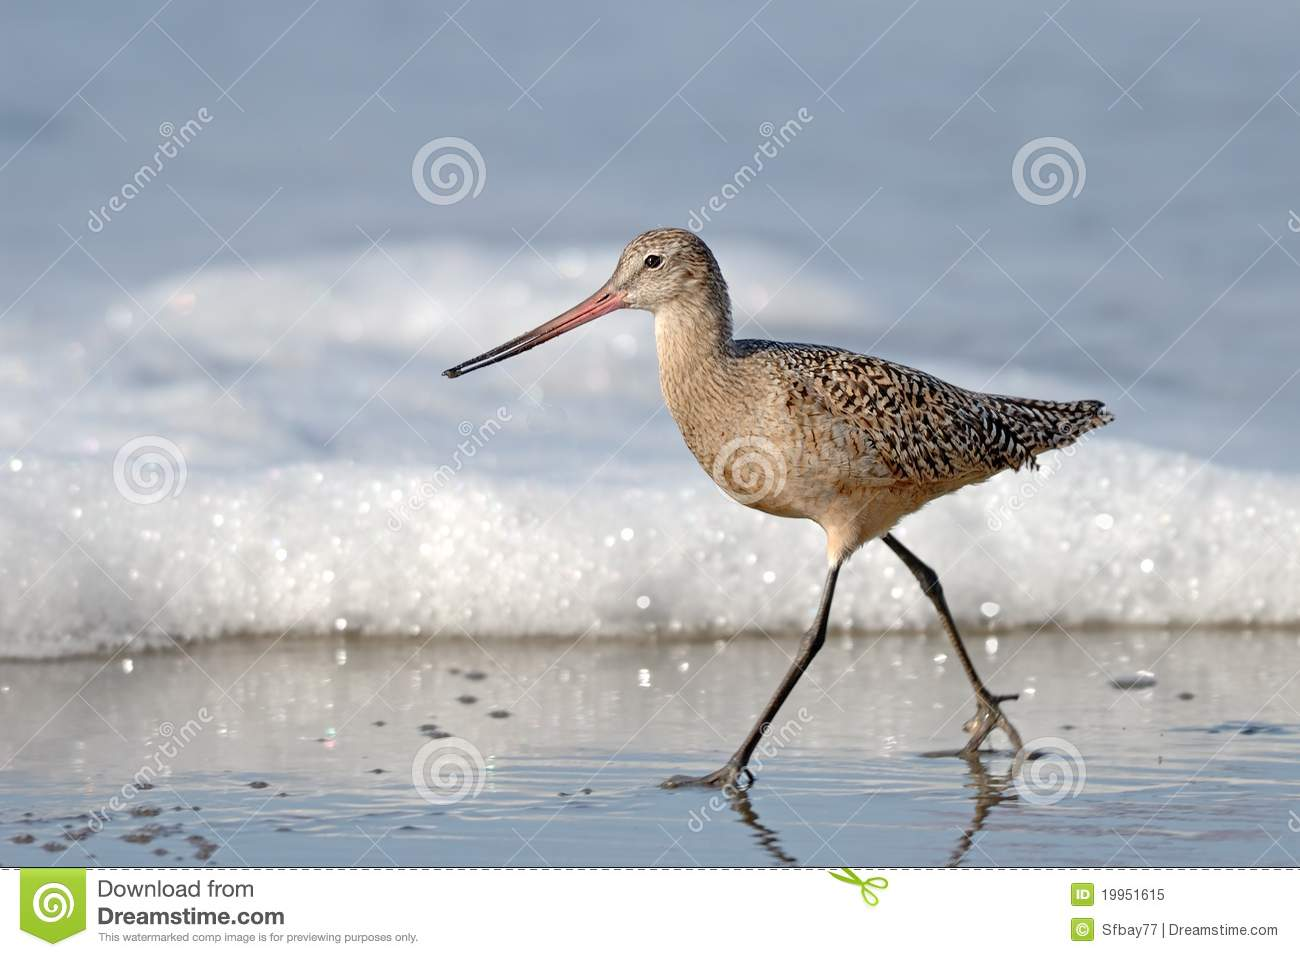 Sandpiper Bird Walking On Beach With Sea Foam Royalty Free Stock Photo ...